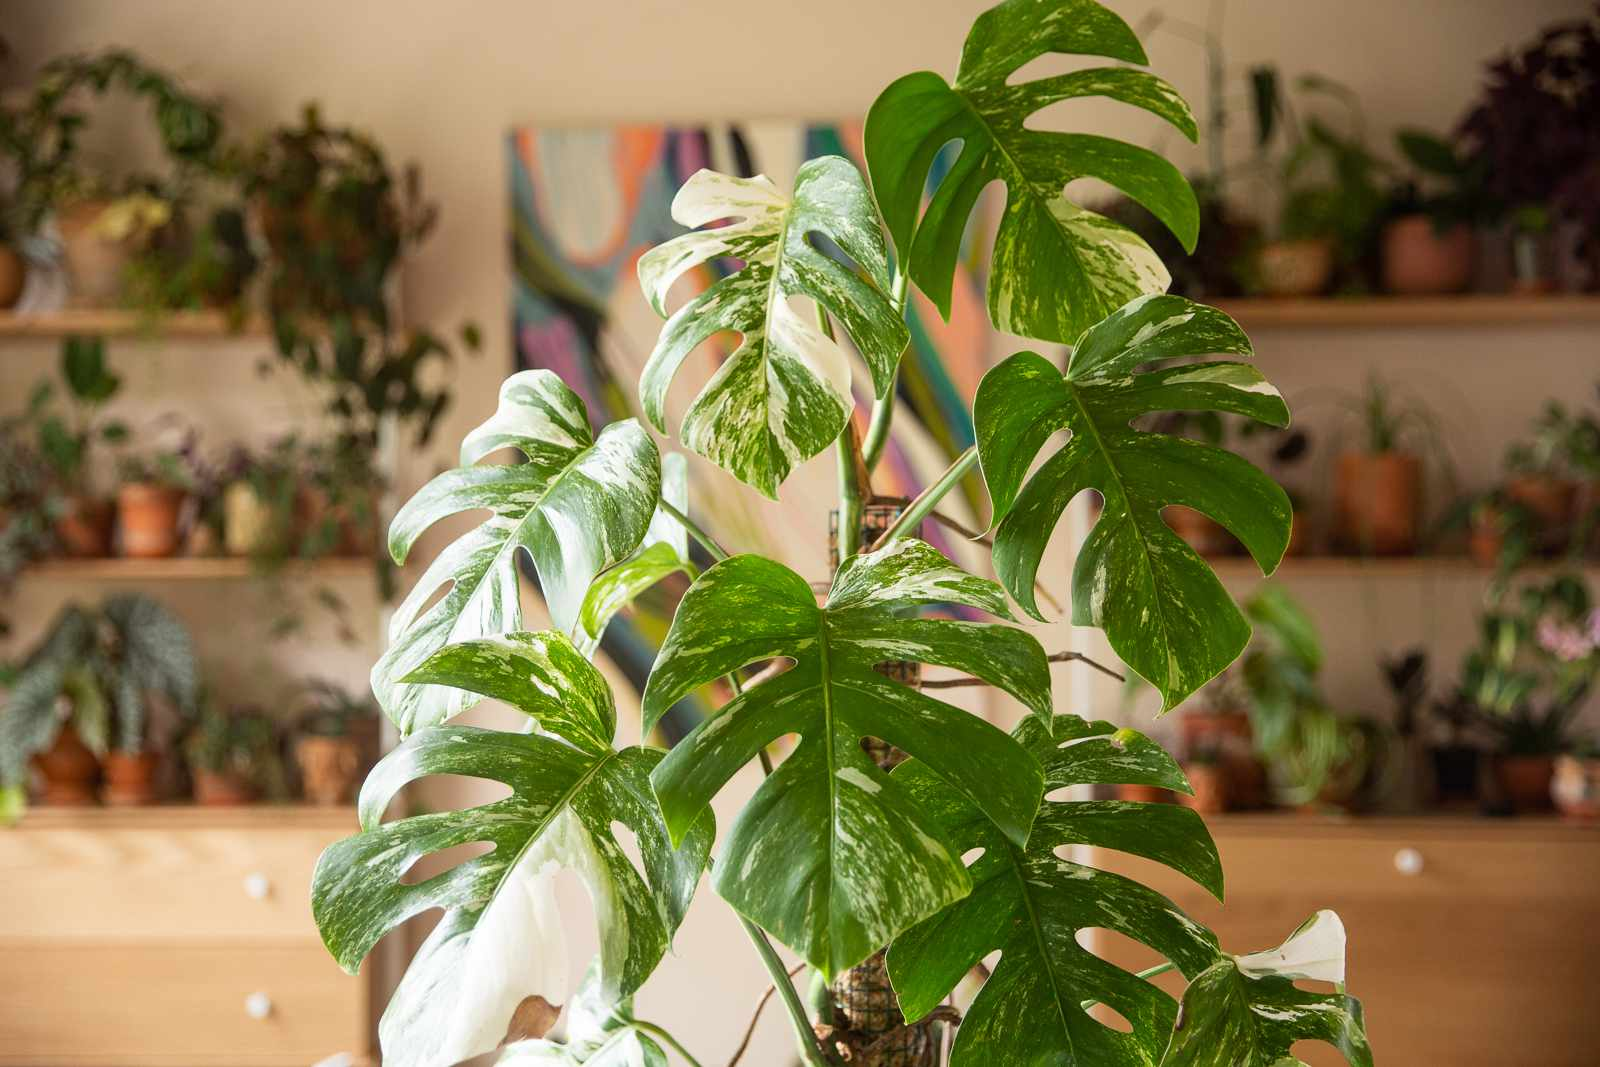 Expensive white and green variegated monstera in front of houseplants